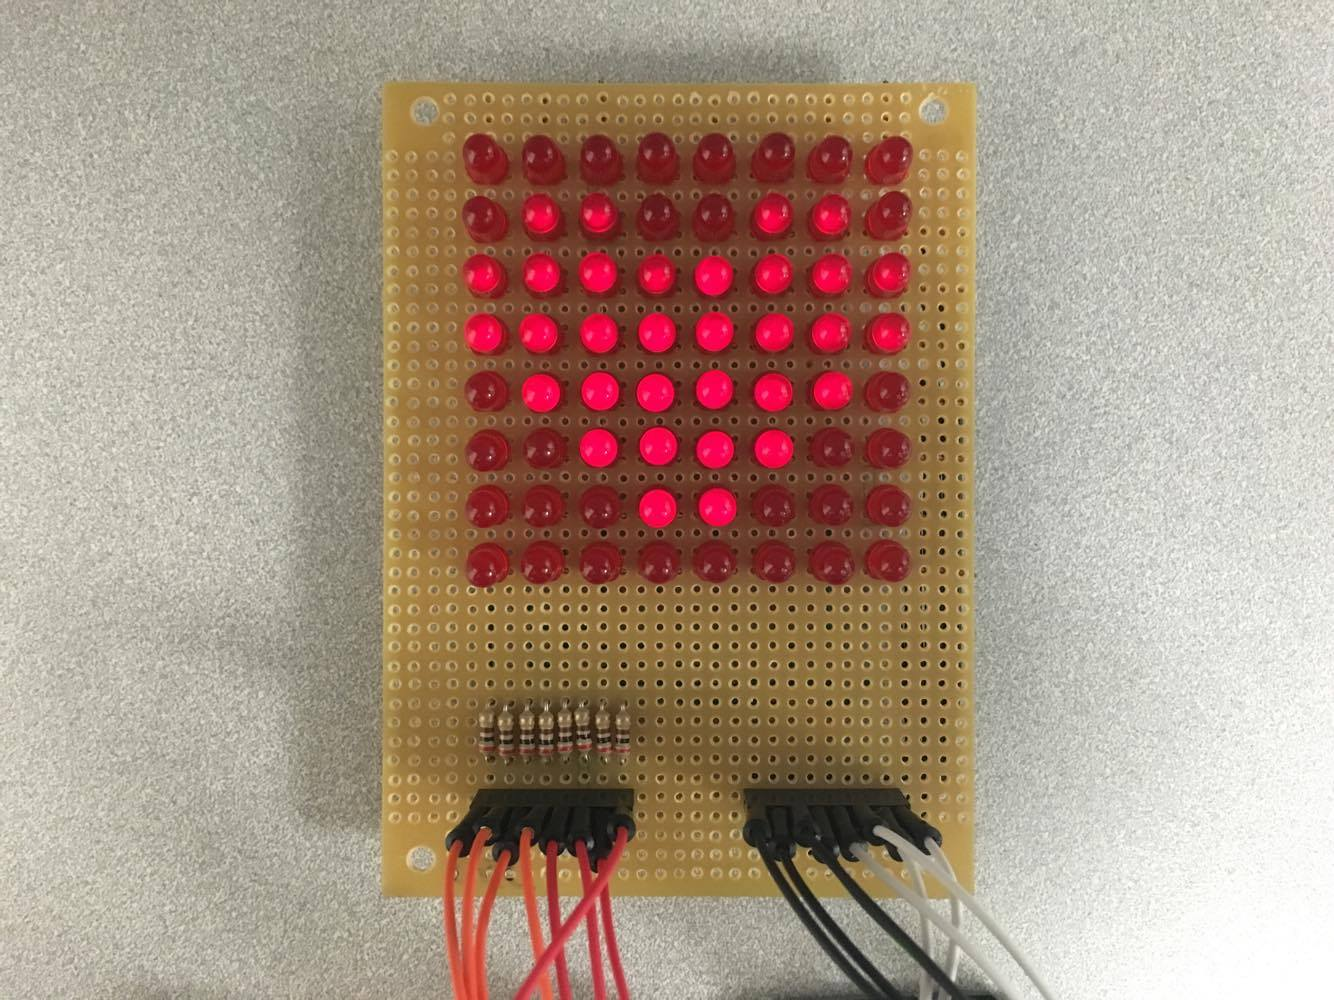 Led matrix beating heart tutorial simply smarter